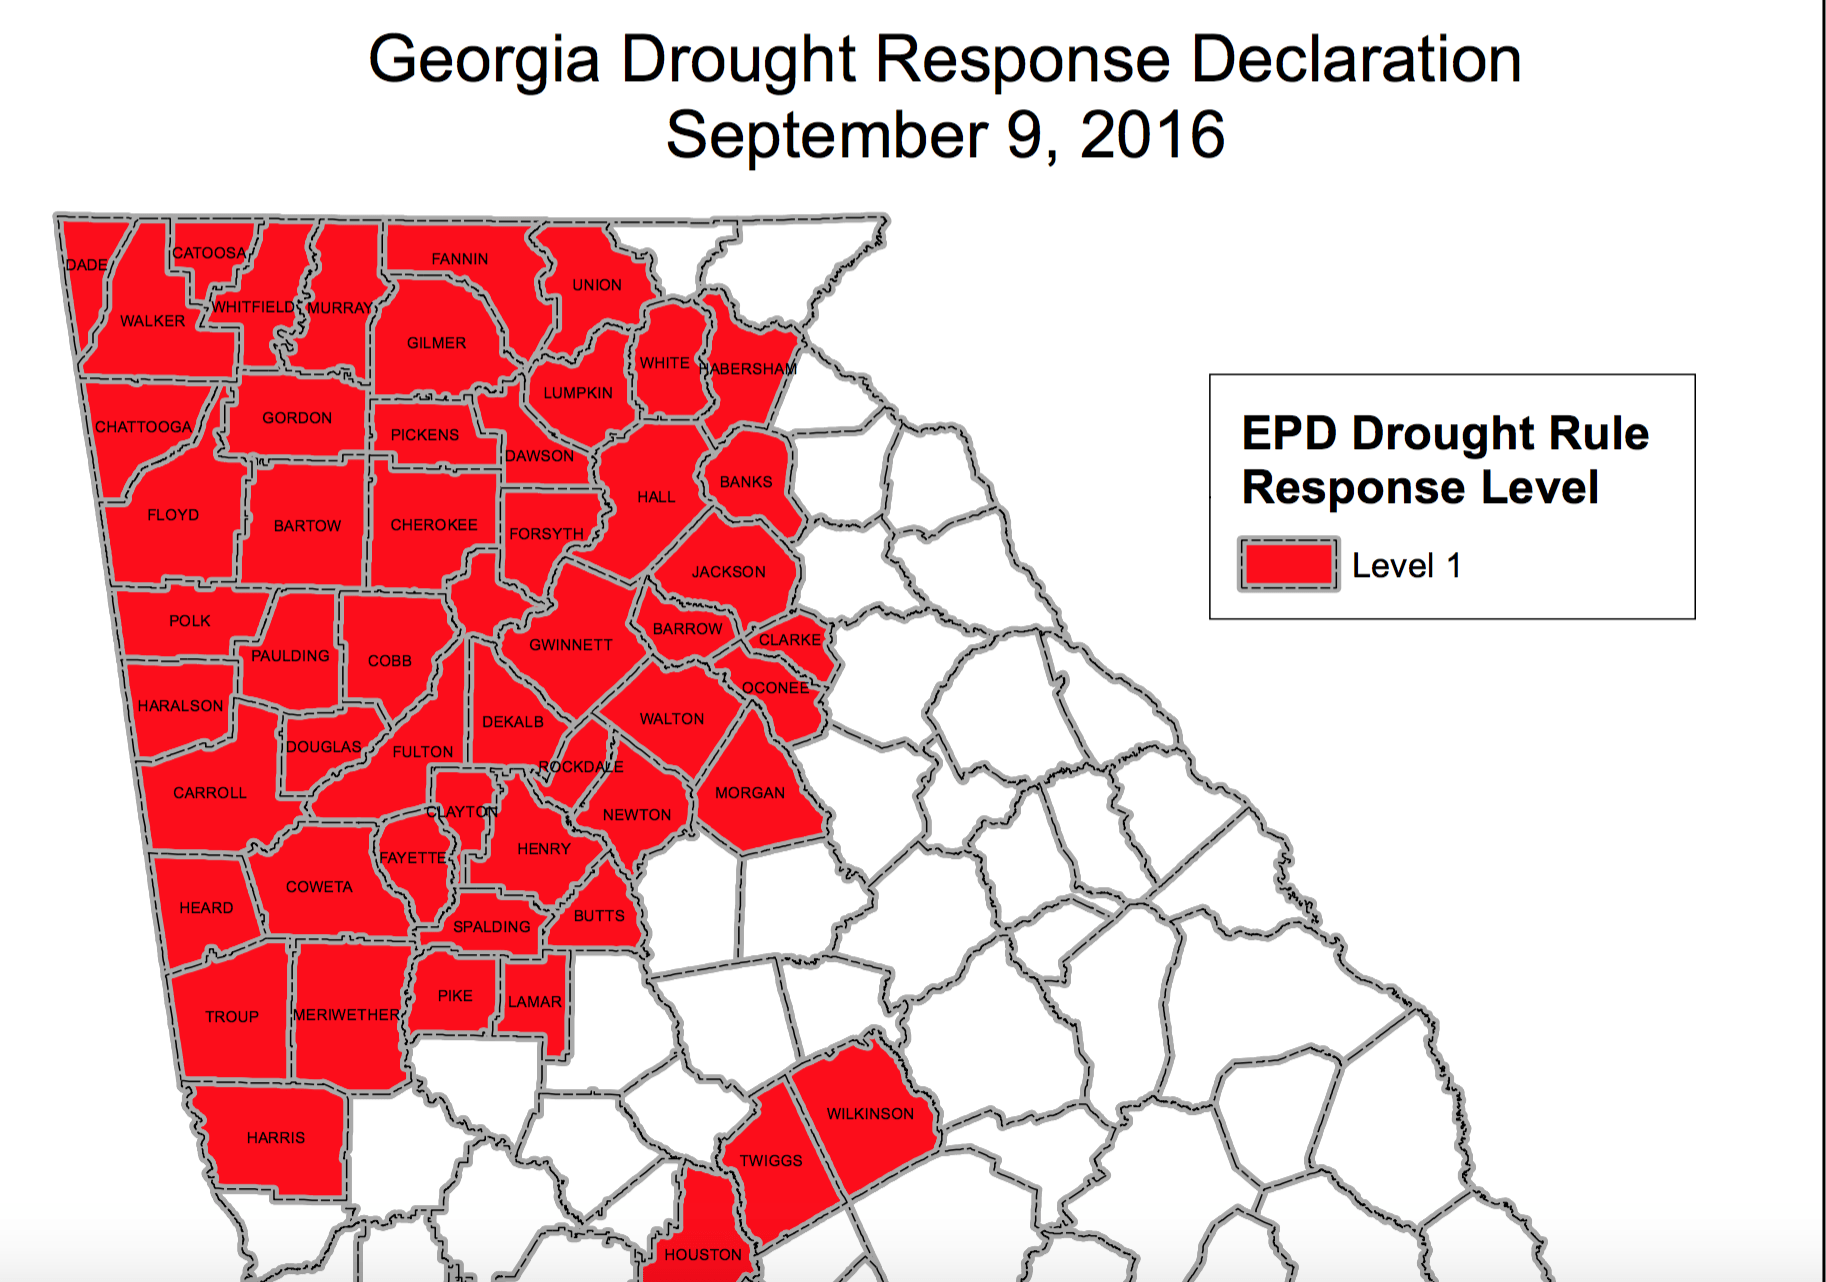 Level 1 Drought Declared in Georgia